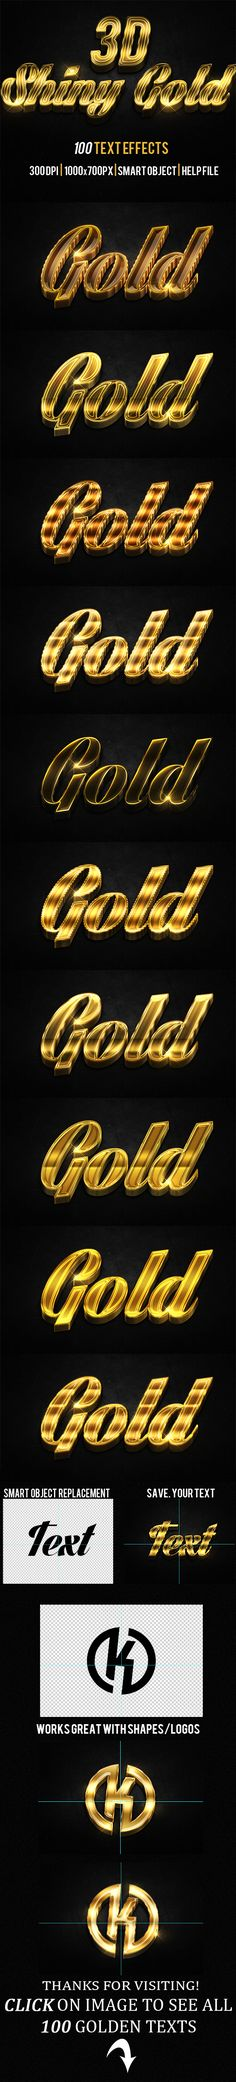 100 3D Shiny Gold Text Effects Download at: http://goo.gl/IpMkpC